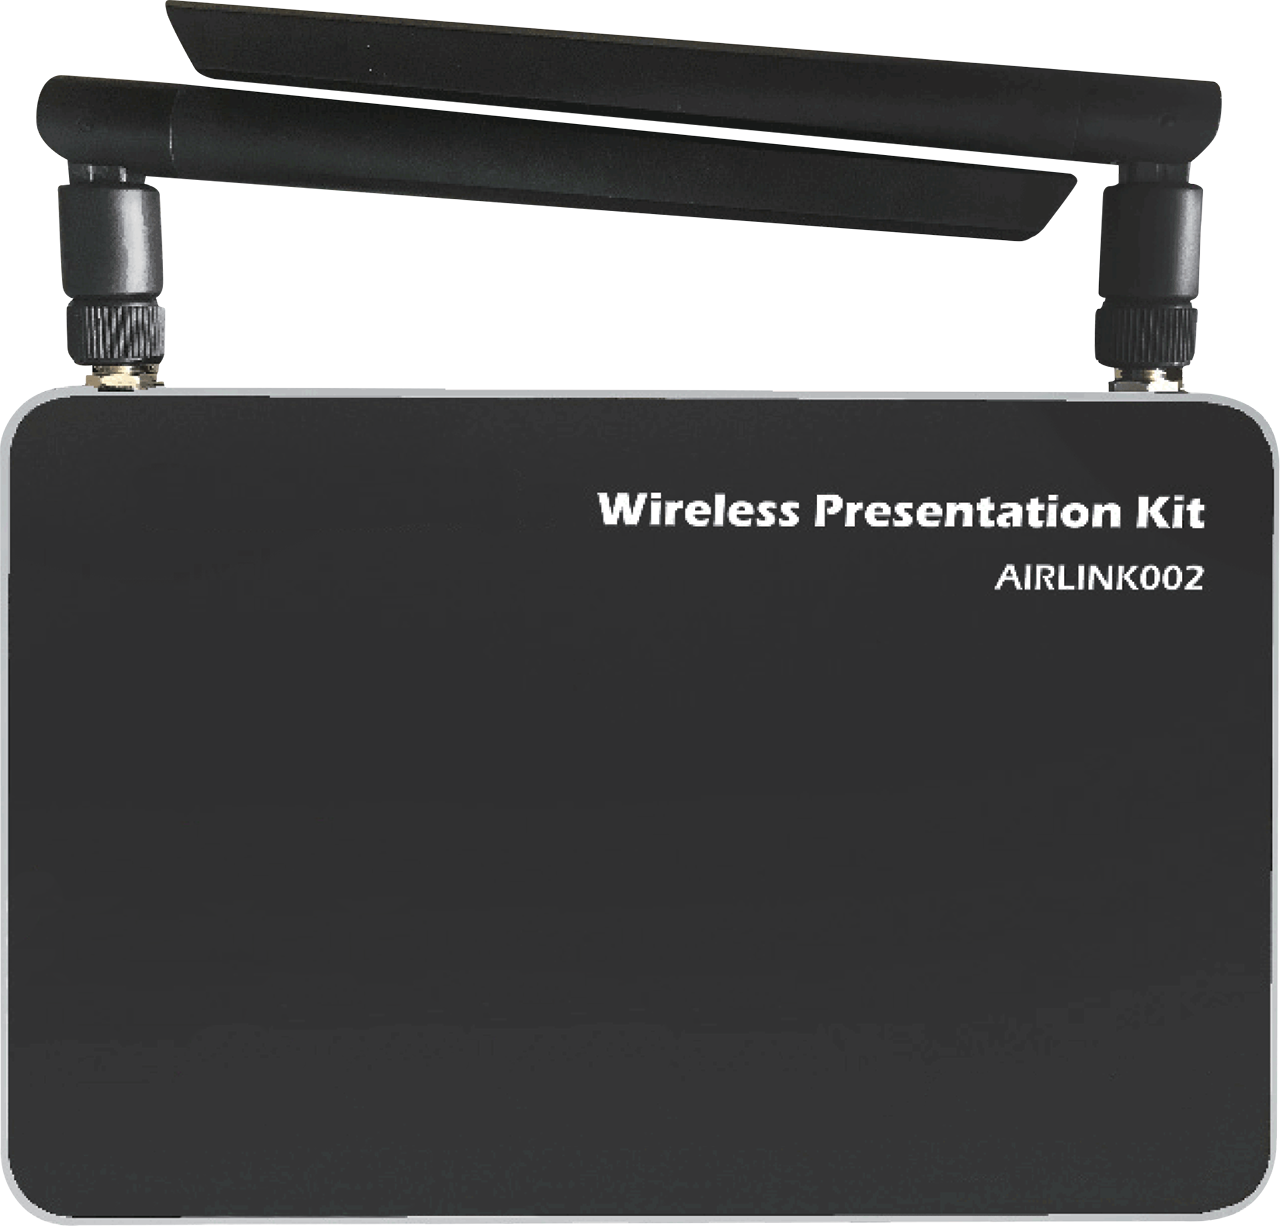 Pro.2 AirLink002 Wireless Presentation Kit w/ 2 Dongles